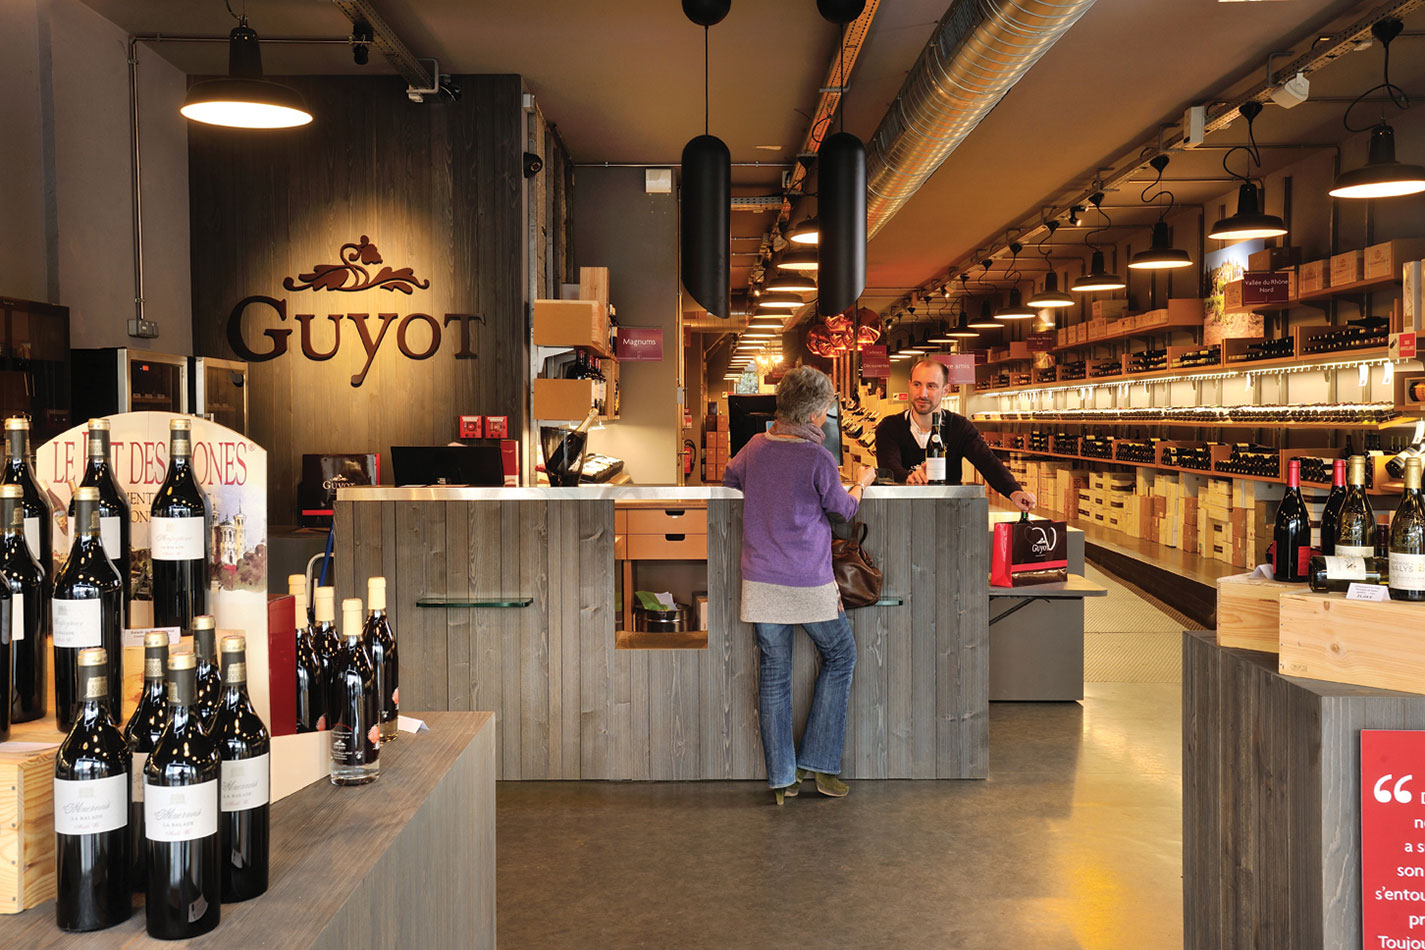 pages-guyot-vins-caves-lyon-saint-antoine.jpg